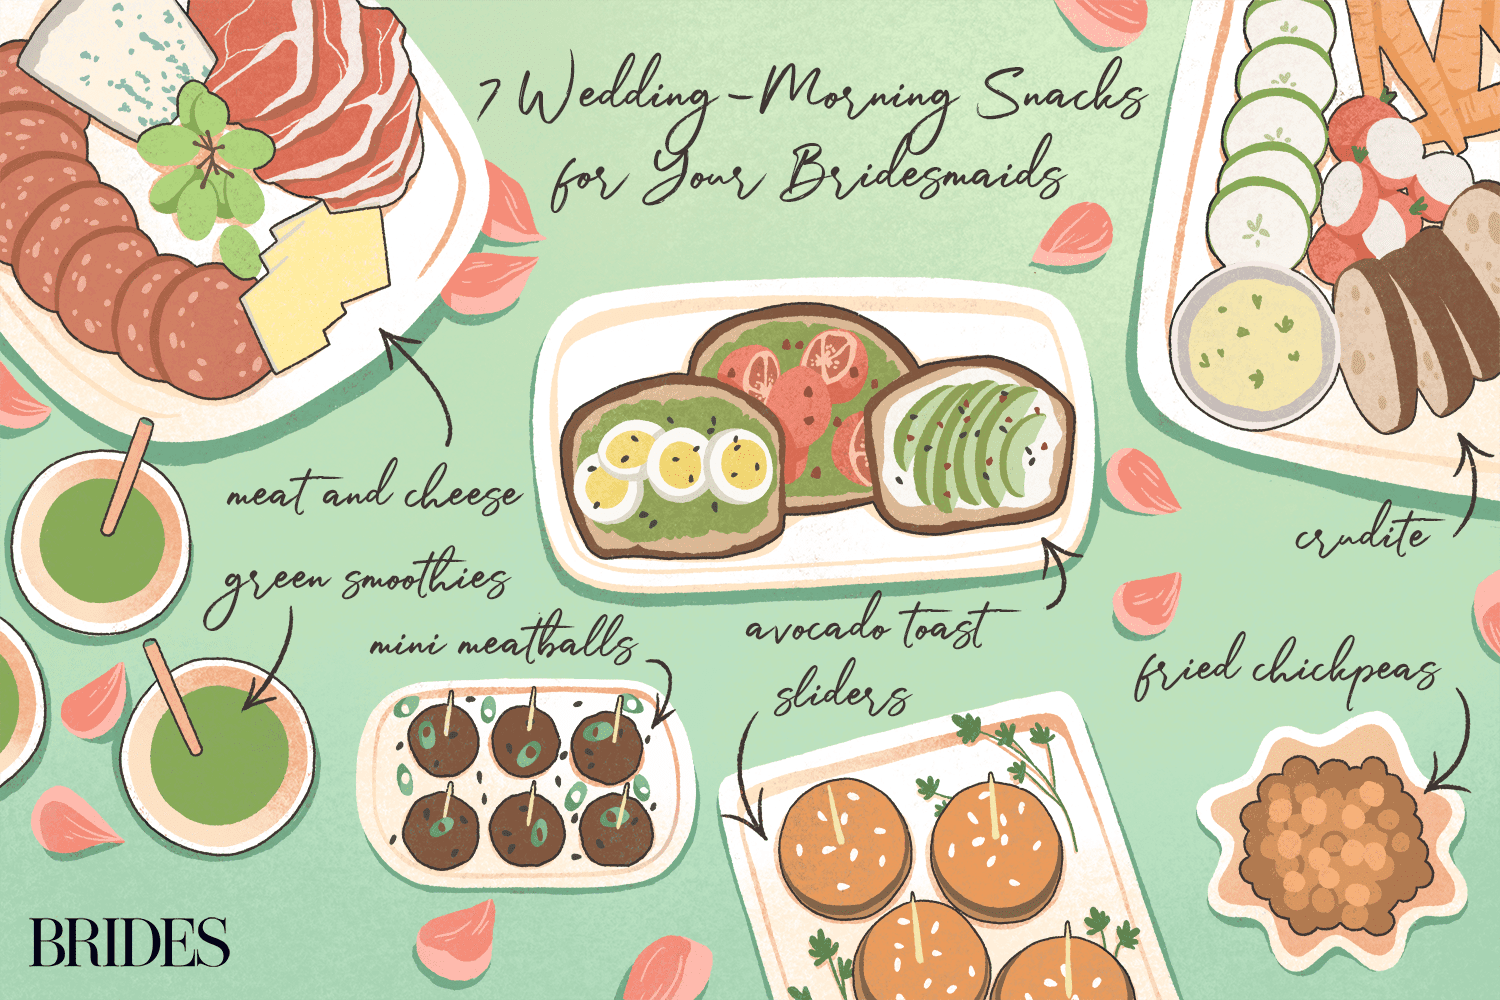 7 Wedding-Morning Snacks for Your Bridesmaids